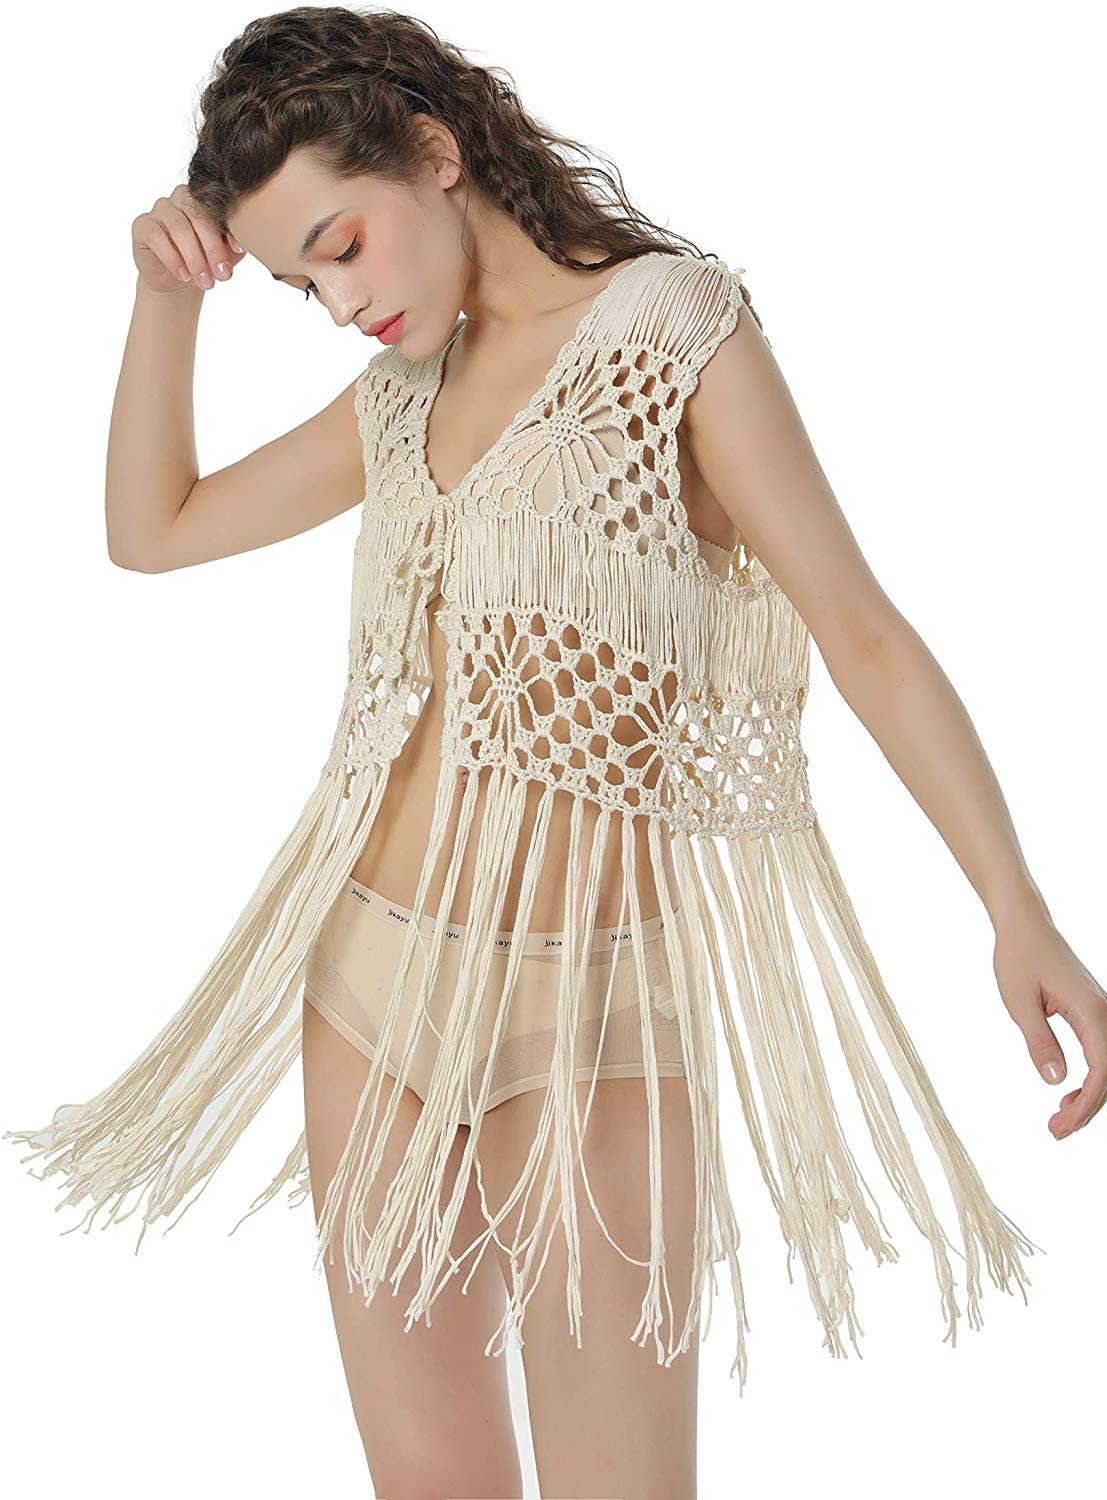 Acemi Sleeveless Crochet Long Tassels Fringe Vest 70s Cover up Hippie Clothes for Women Free Size at Amazon Women's Clothing store